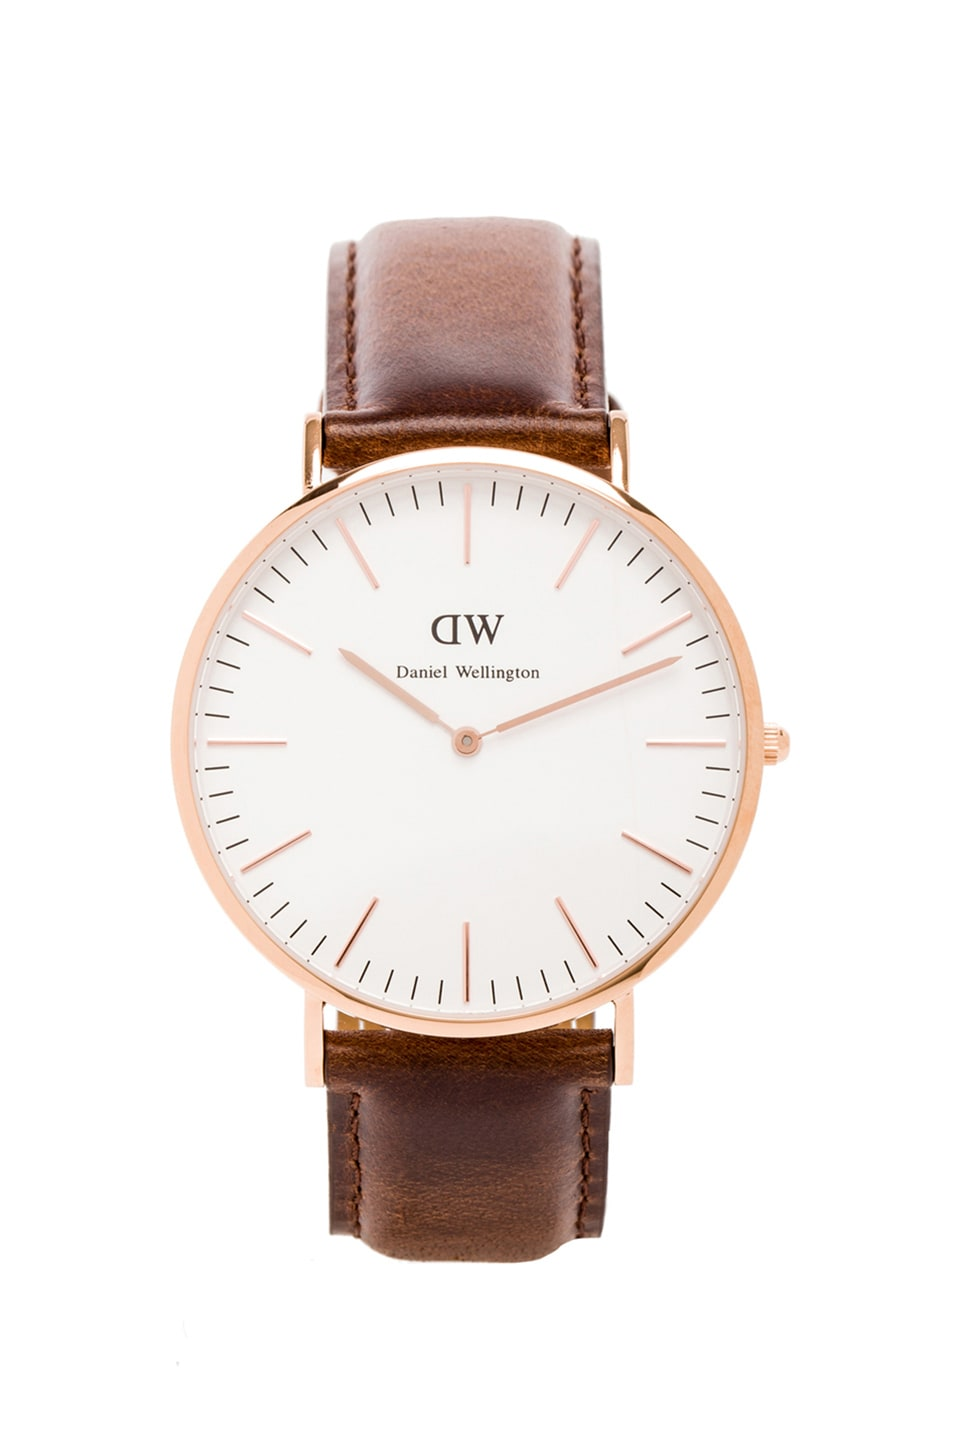 Daniel Wellington Bristol 40mm in 로즈골드